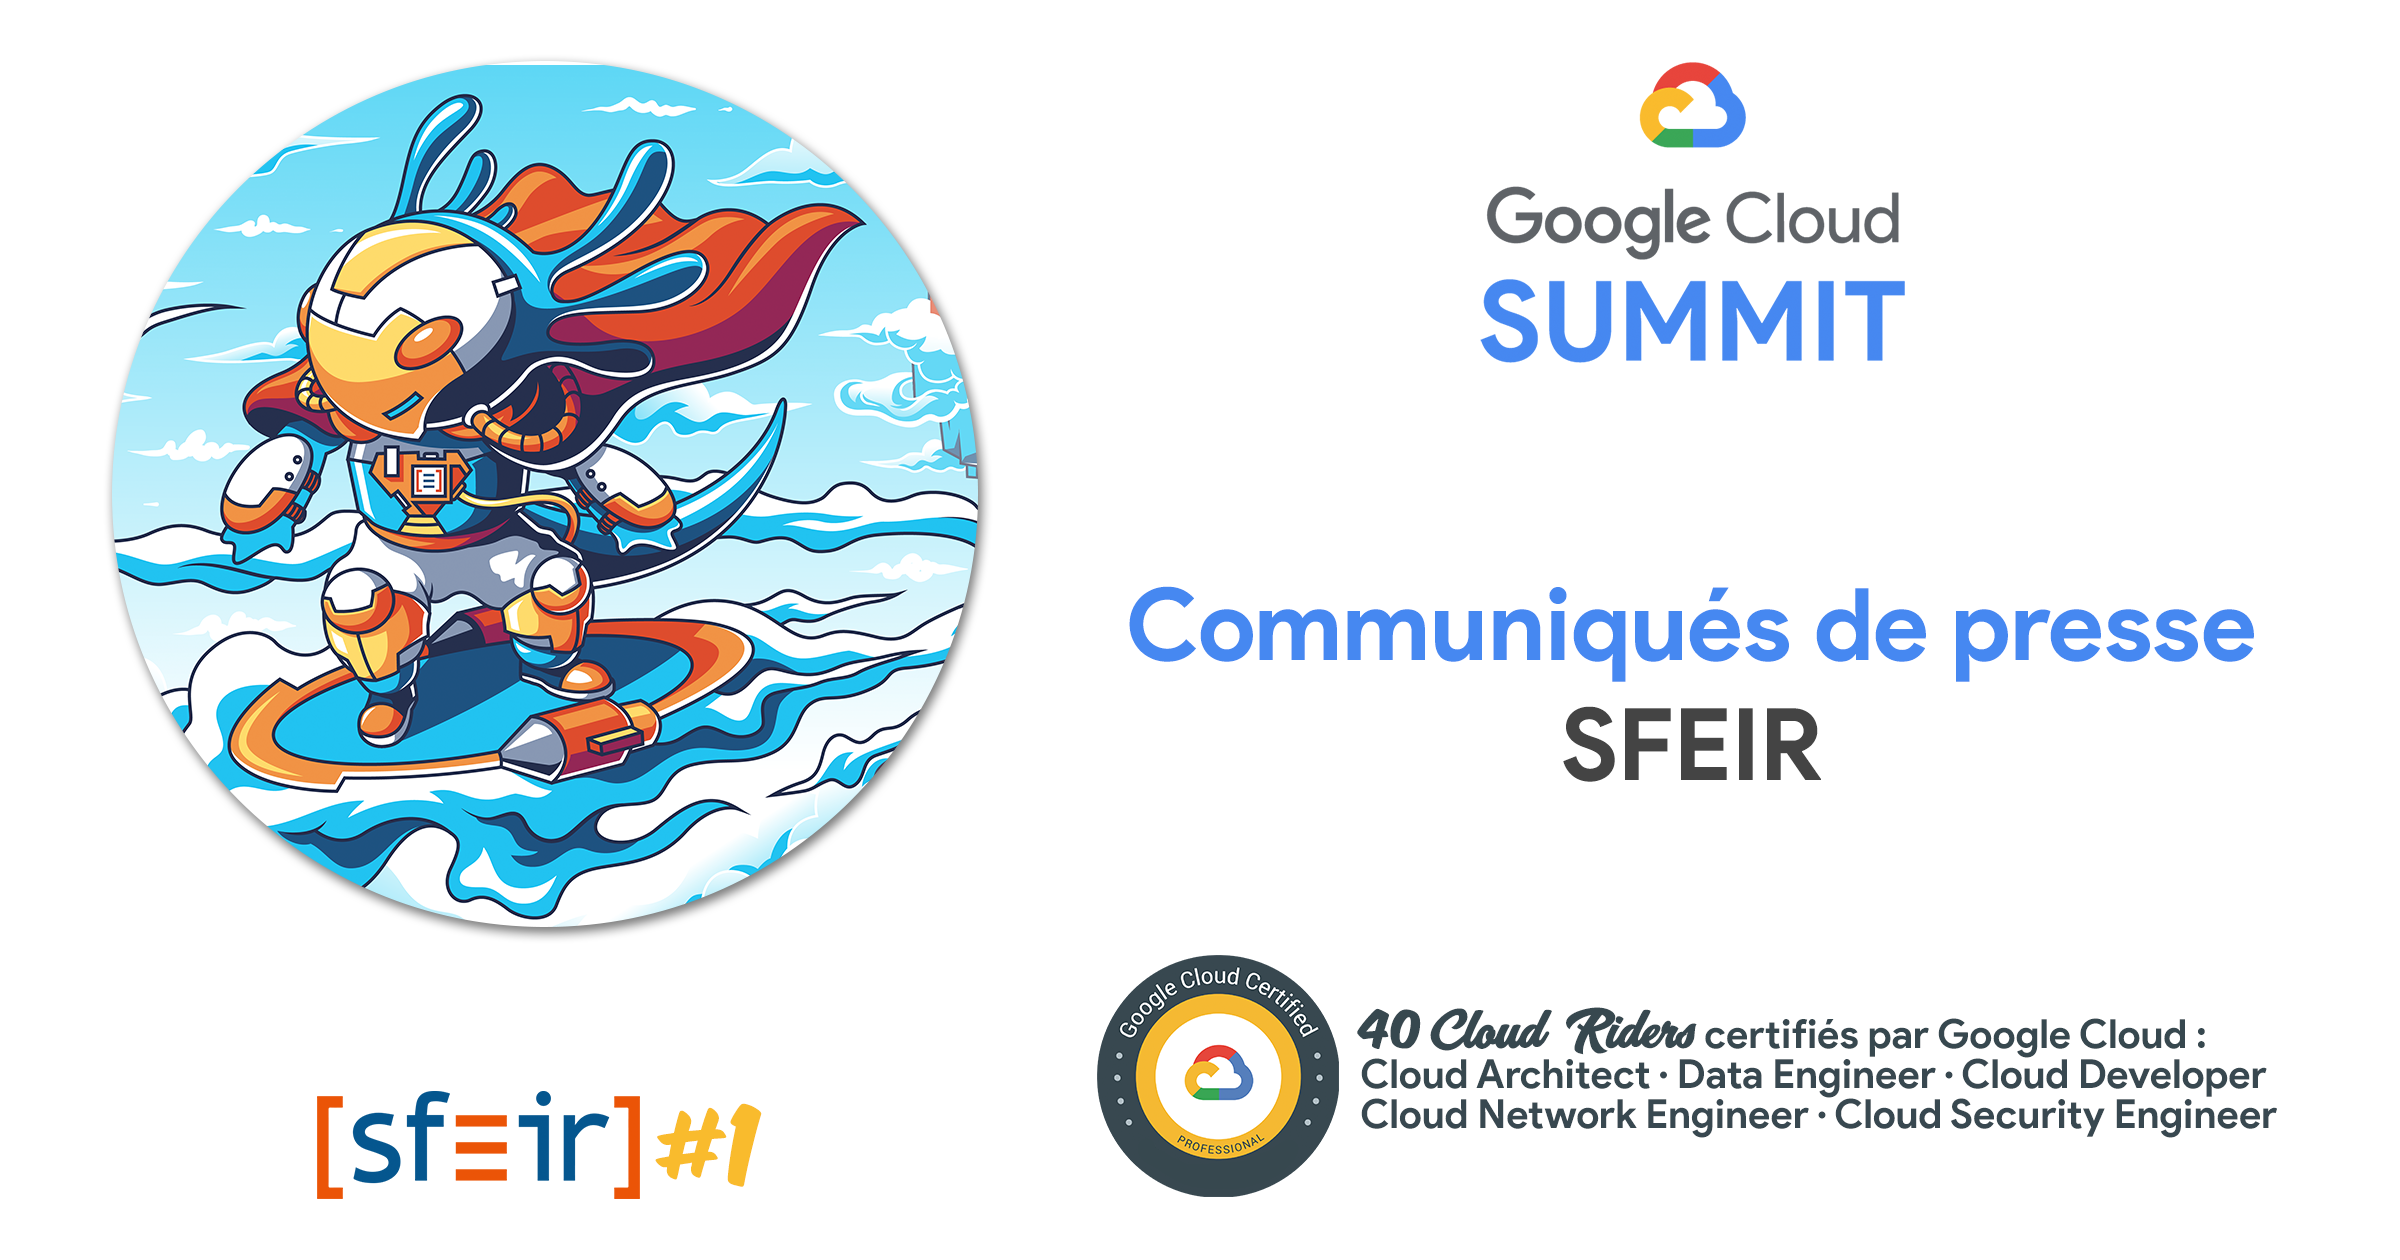 Communiqués de presse SFEIR - Google Cloud Summit 2019